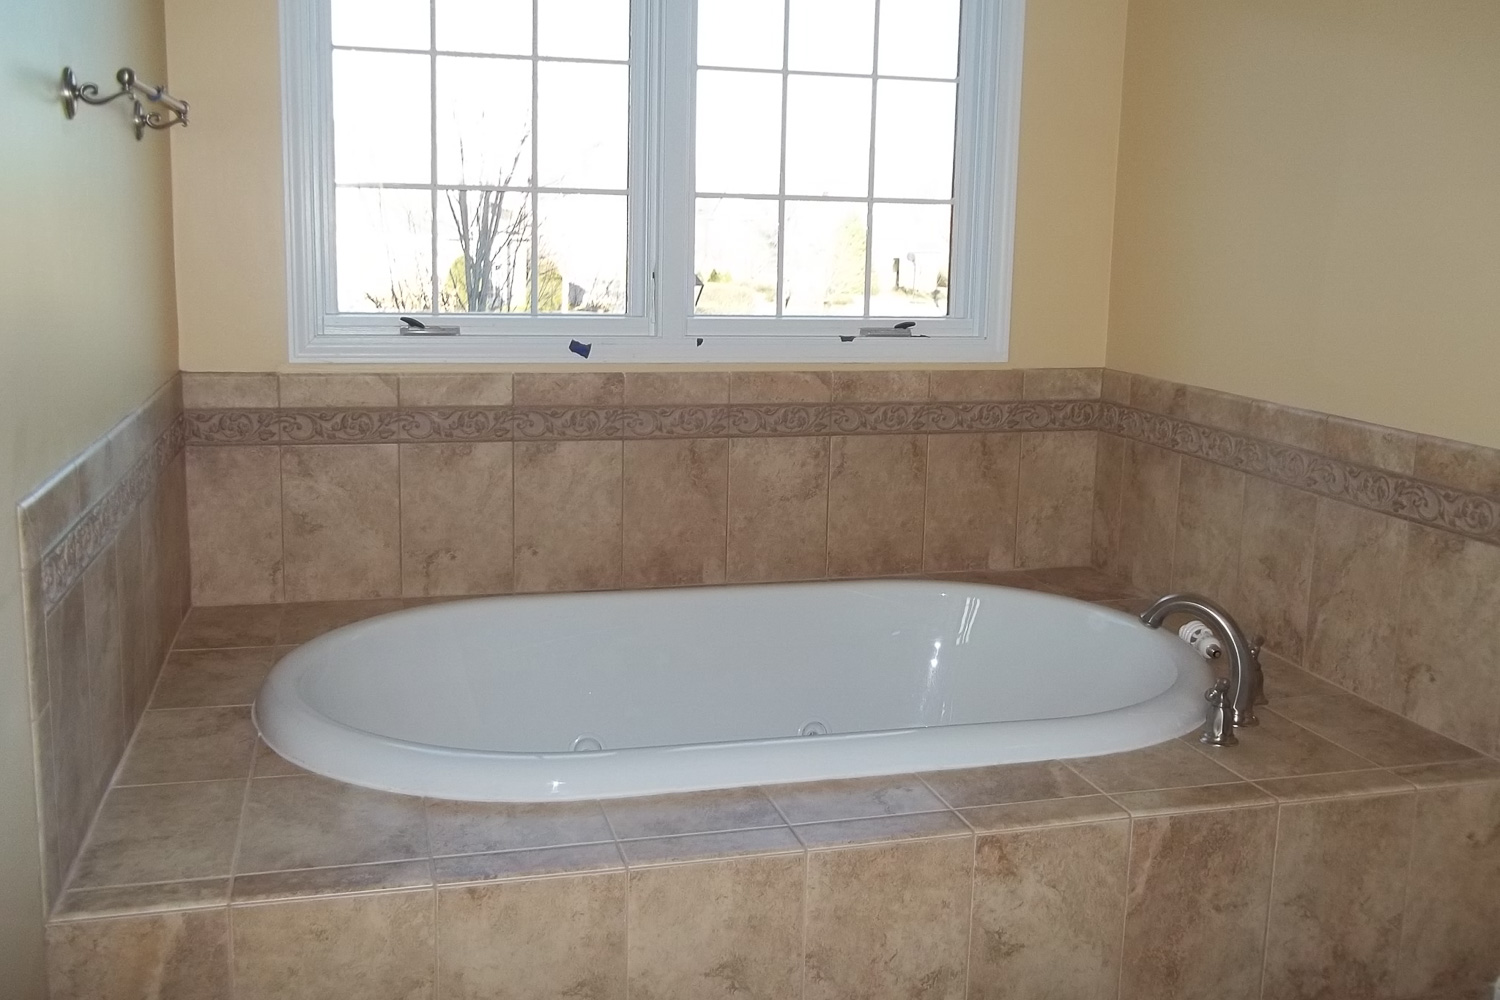 bathtub after restoration project